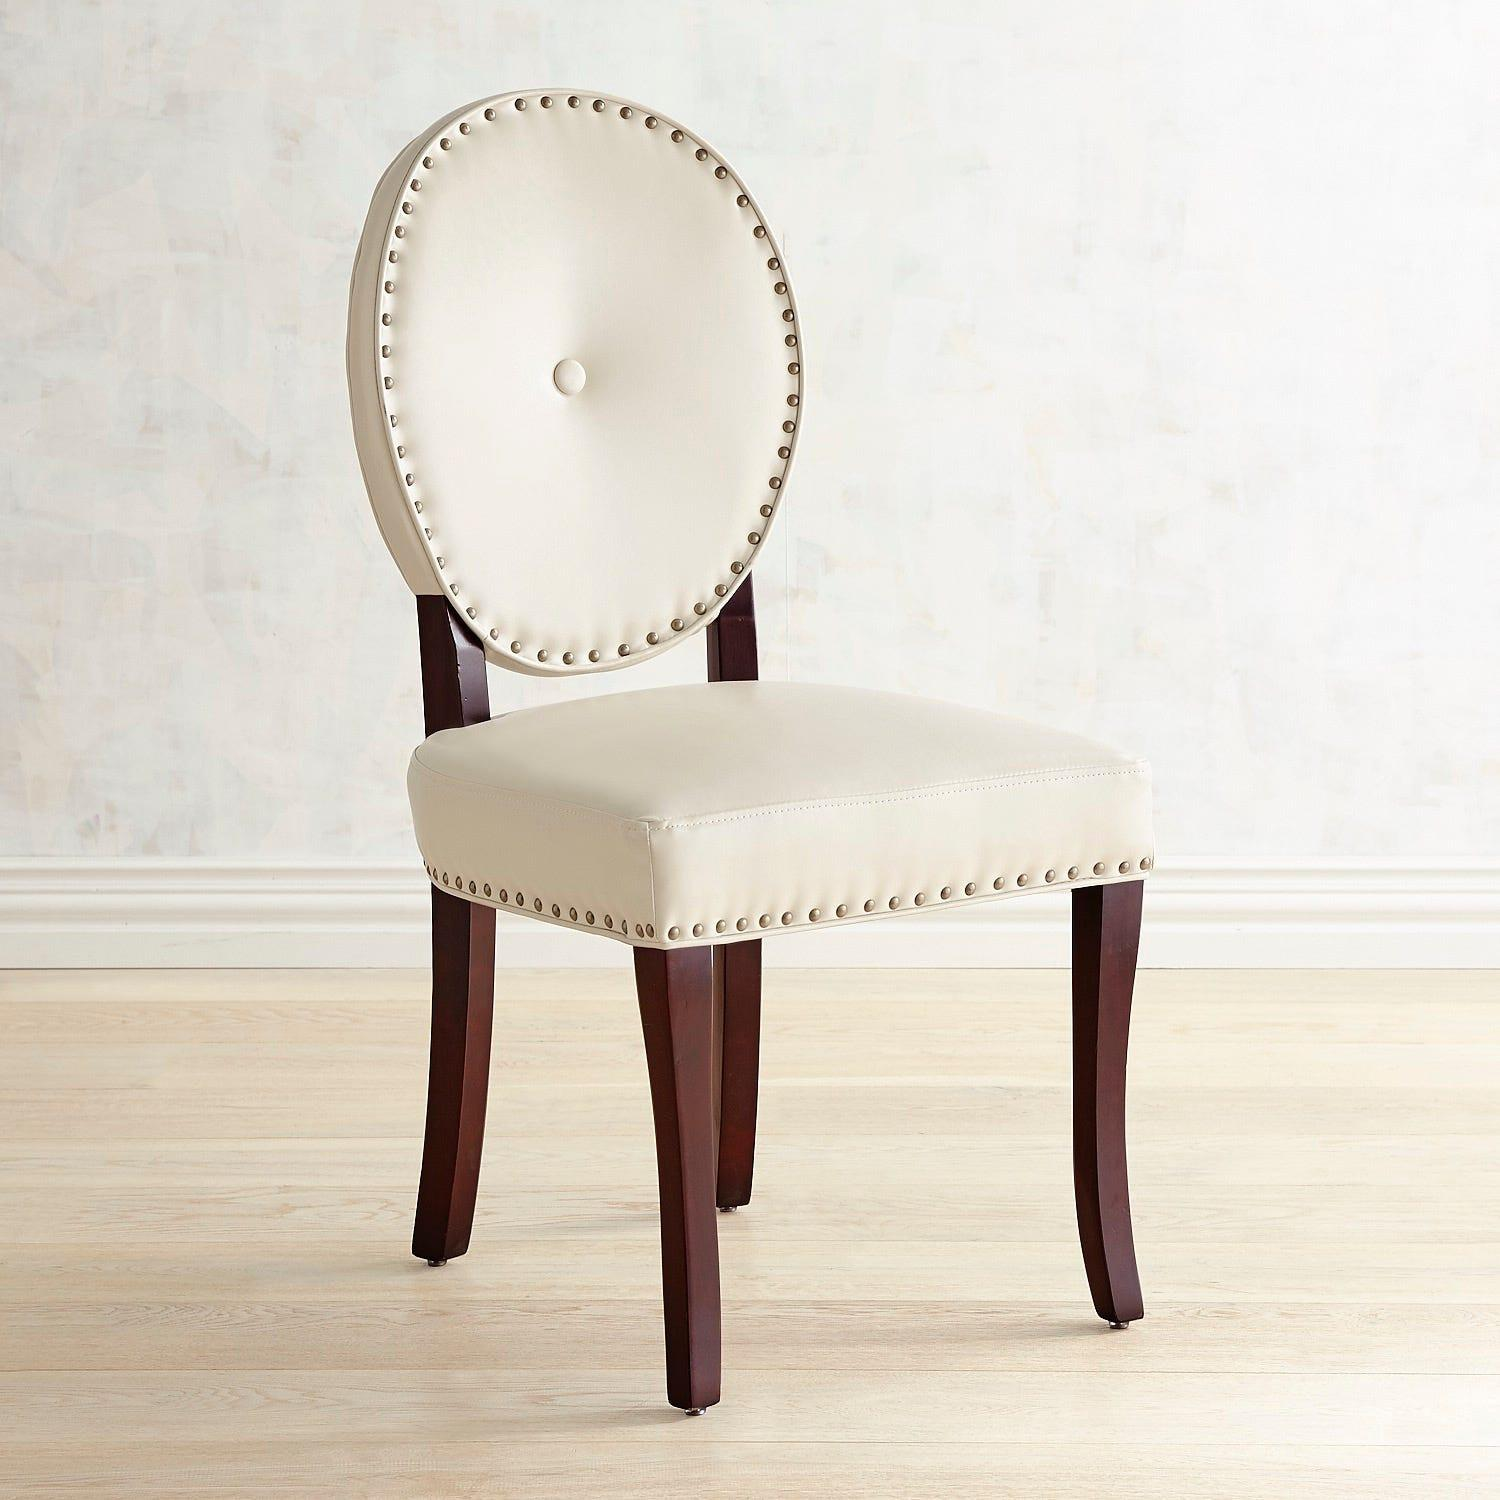 Pier 1 Cadence Ivory Dining Chair - image-2